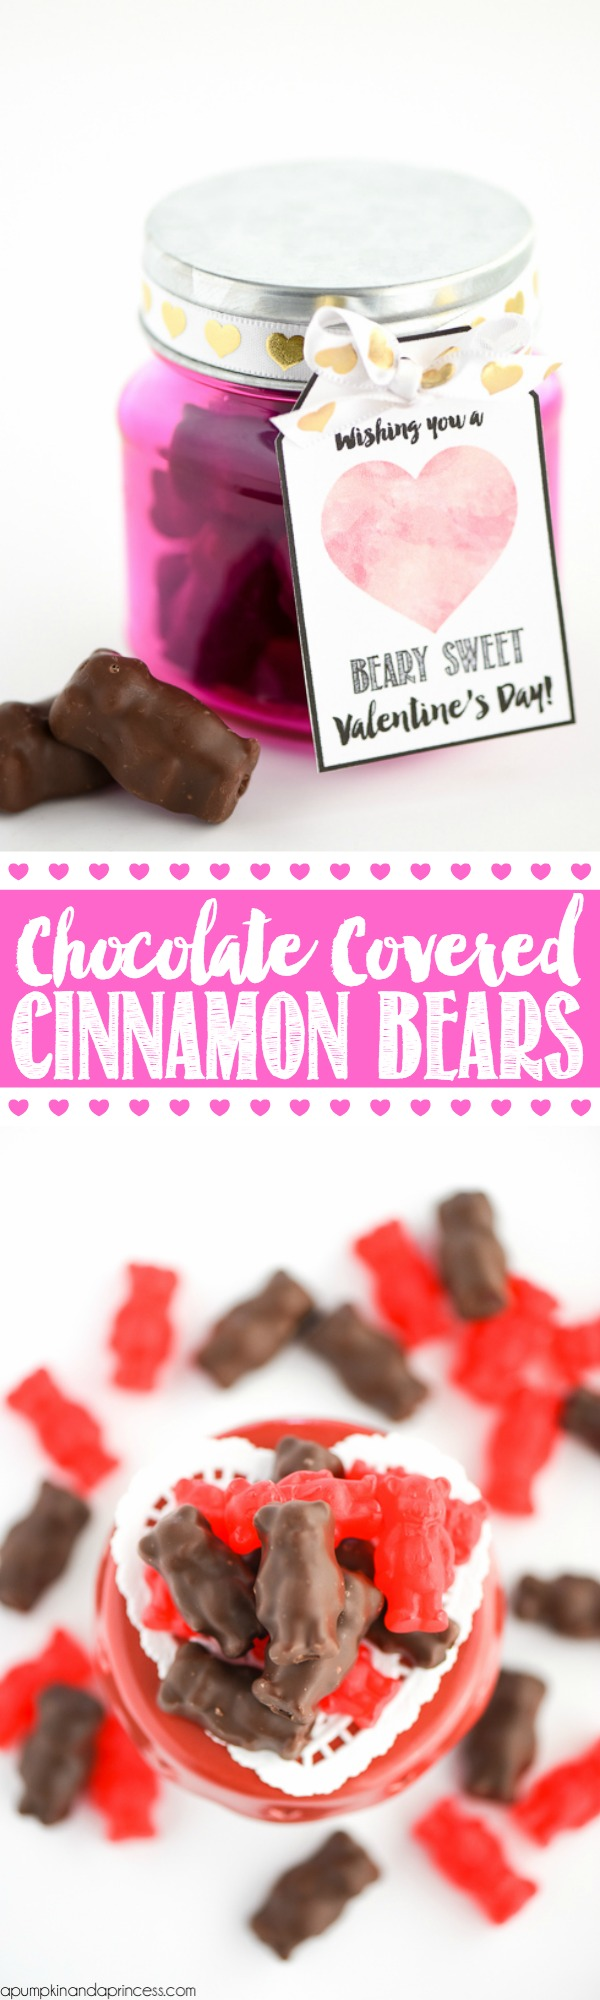 Chocolate Covered Cinnamon Bears Valentine